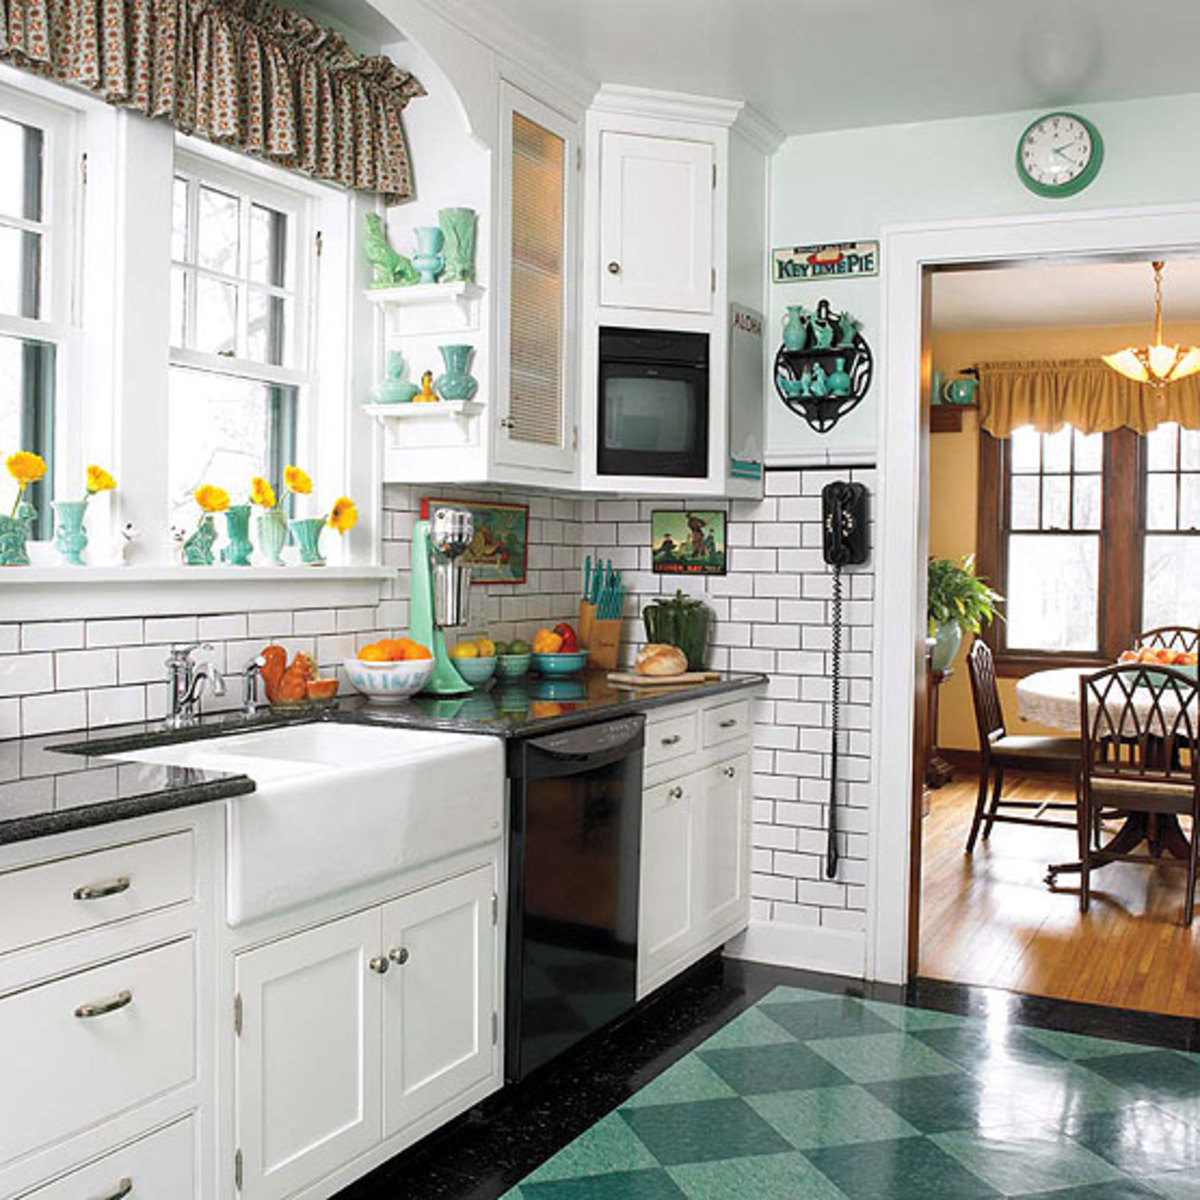 Dark gray grout makes the subway tile pop and plays off the polished granite counters. Every detail was carefully chosen, from the dial telephone to the vintage Oster milkshake blender.